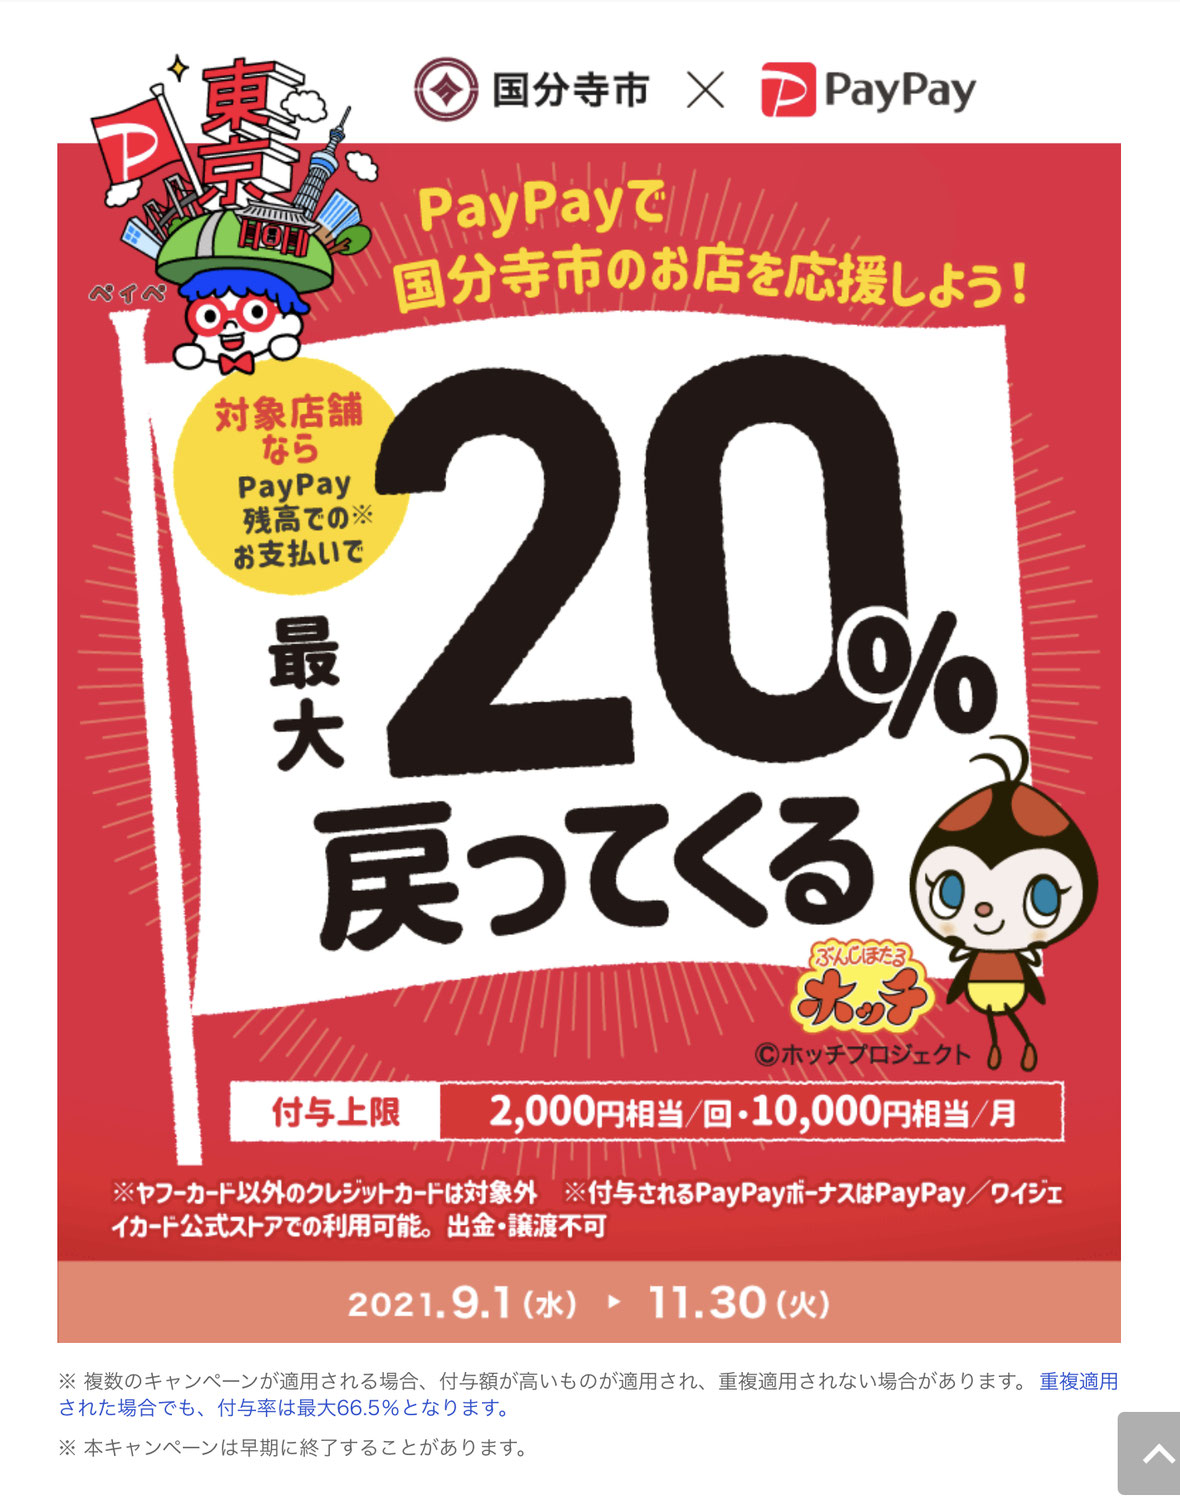 pay payのご登録を☆